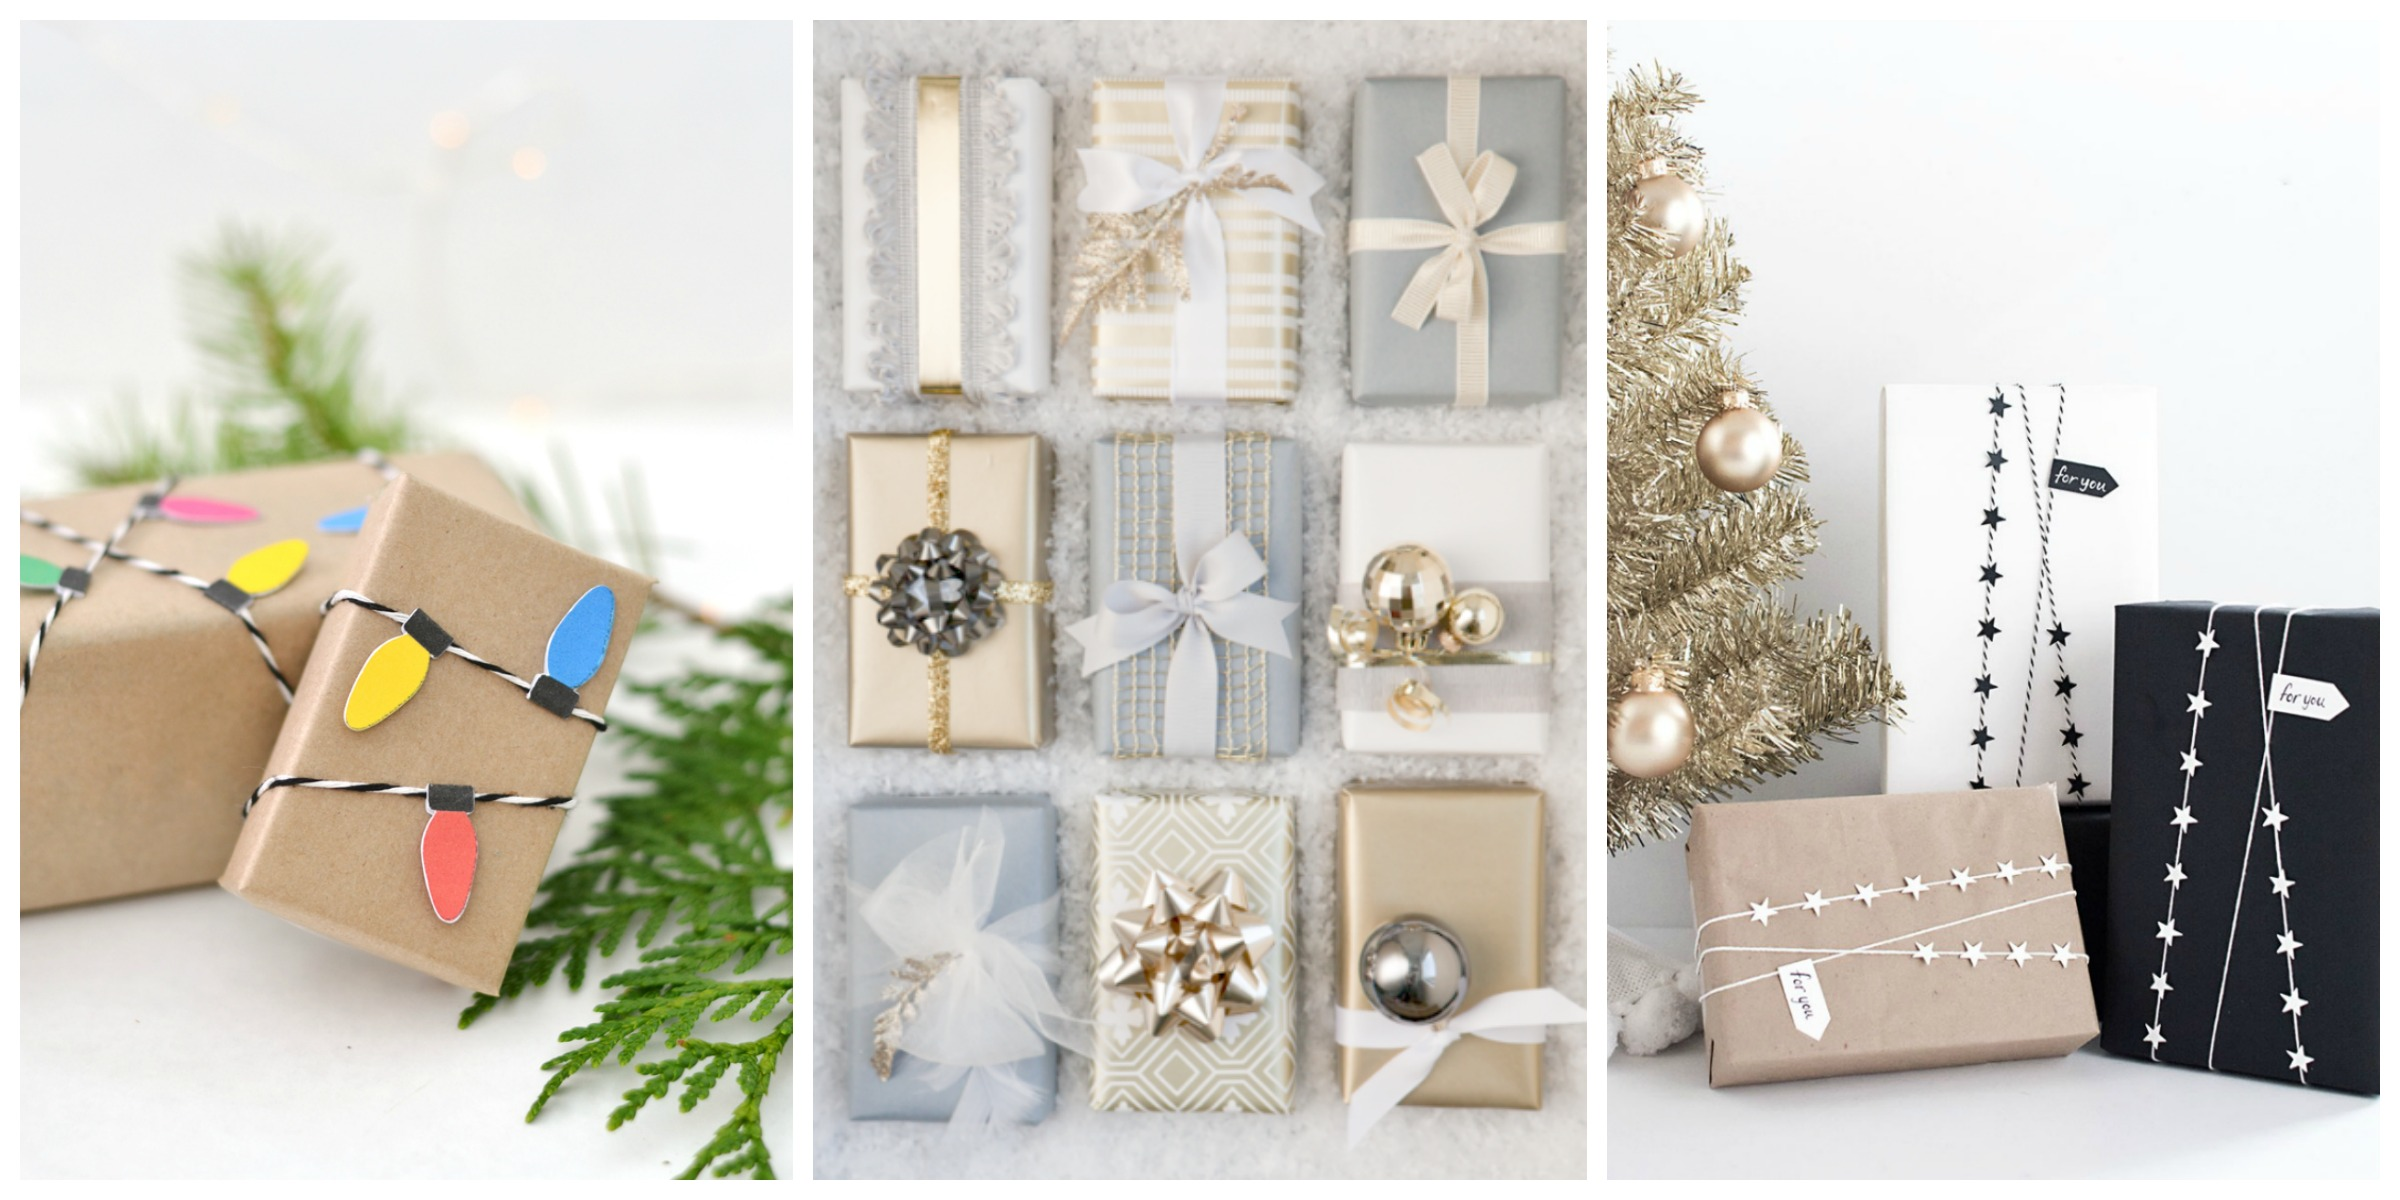 Coole Geschenkverpackung 38 Christmas Gift Wrapping Ideas - Creative Diy Holiday